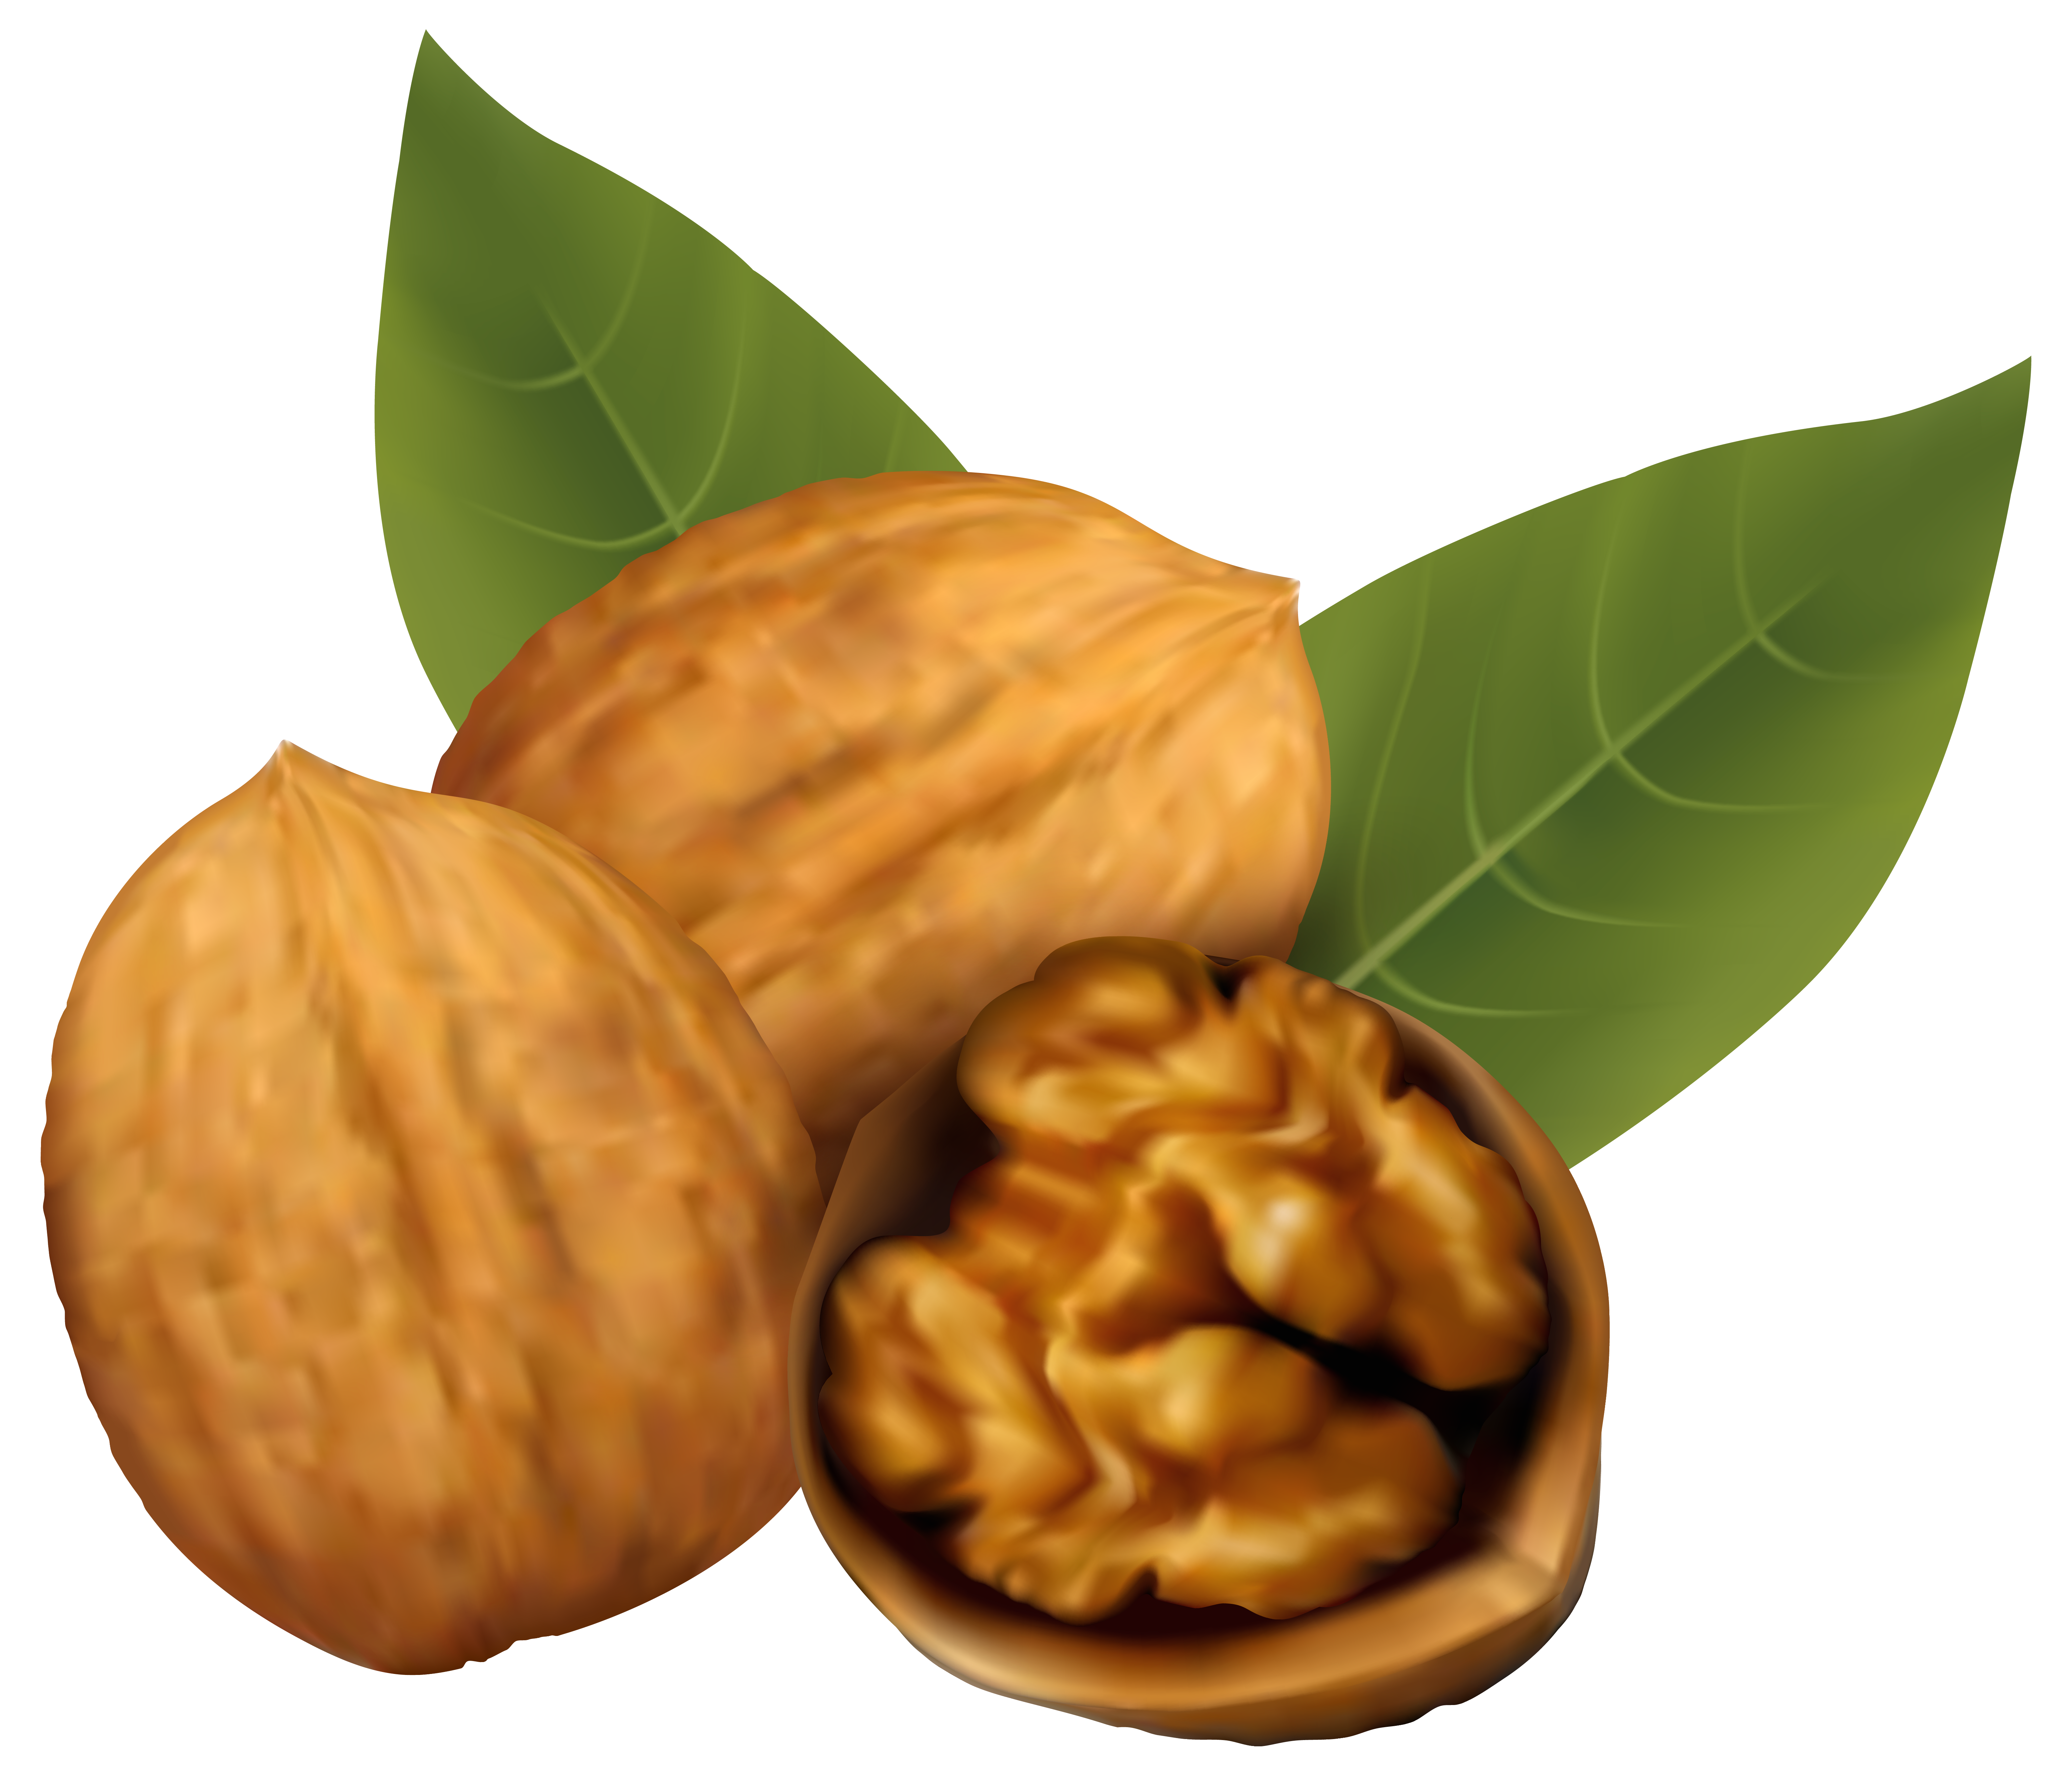 Walnuts png image gallery. Nuts clipart different seed